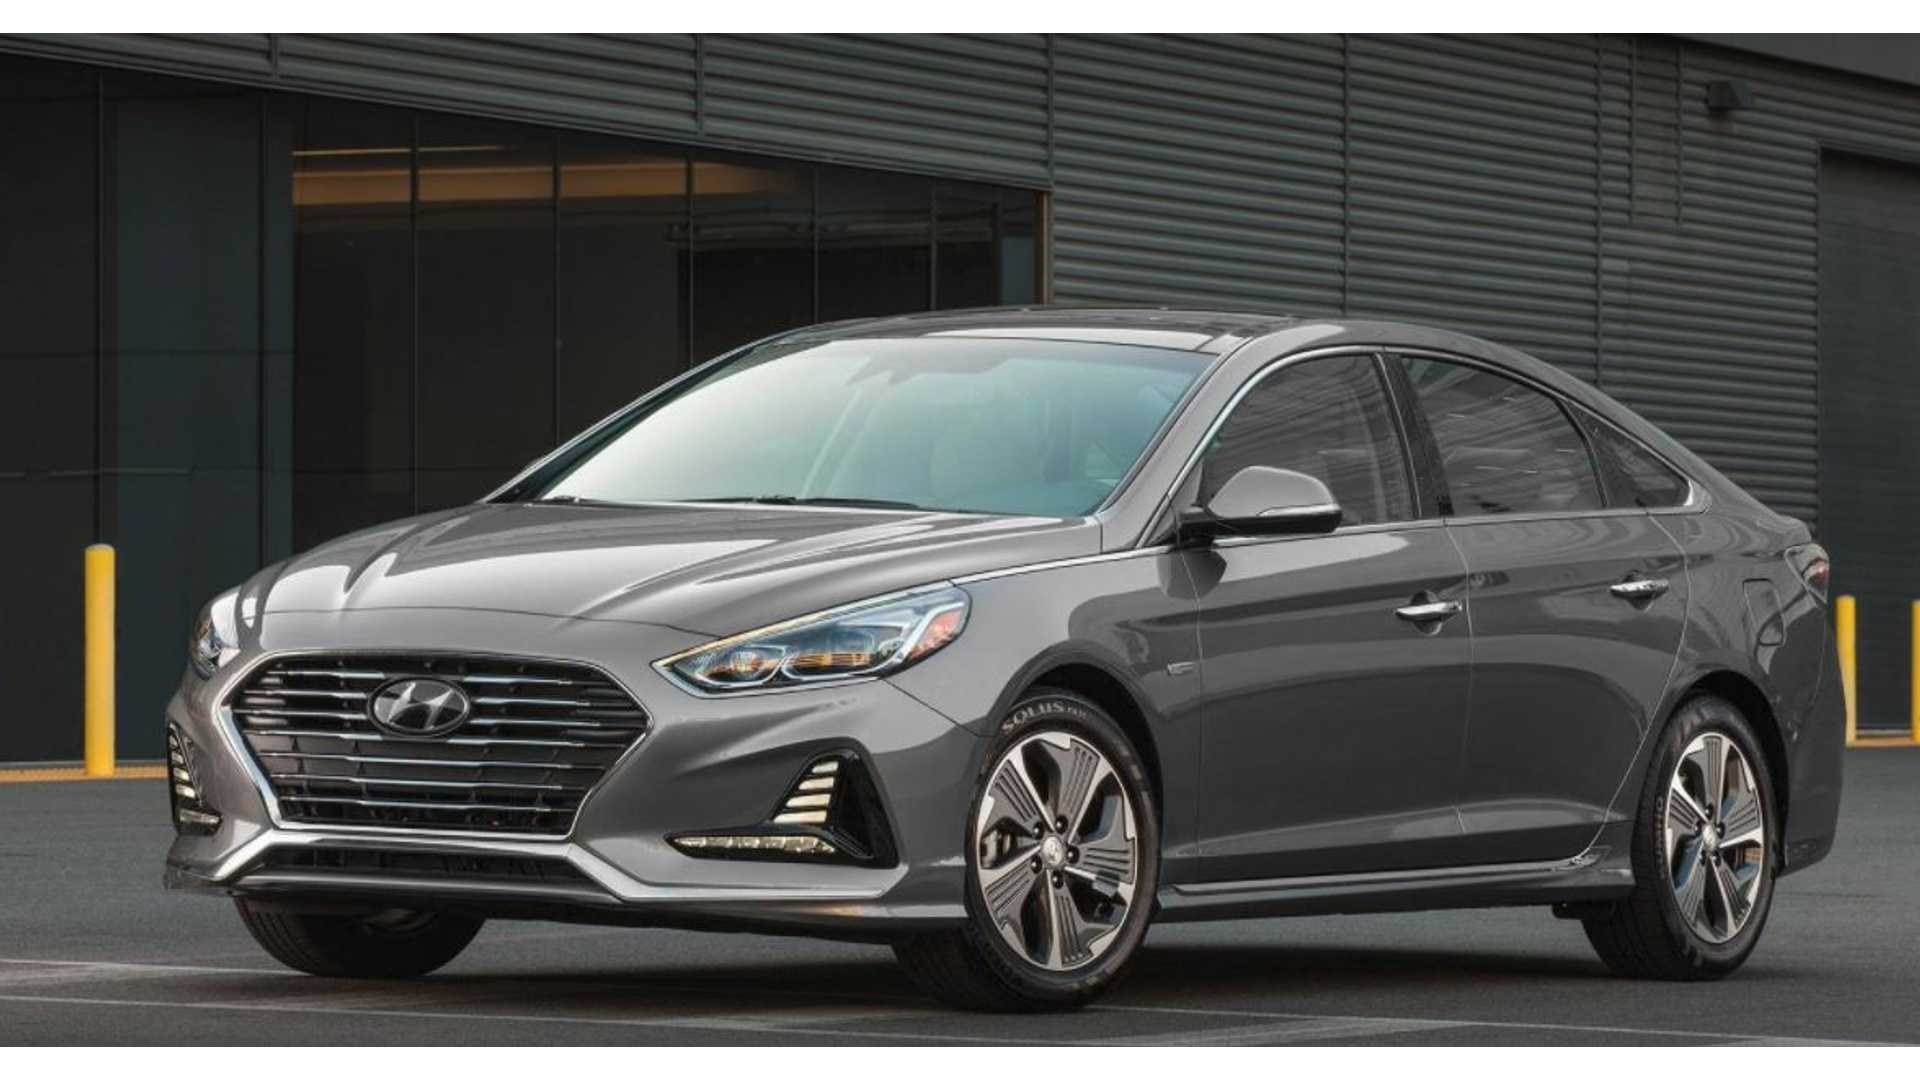 Hyundai Reveals Details On New 2018 Sonata Plug-In Hybrid, Electric